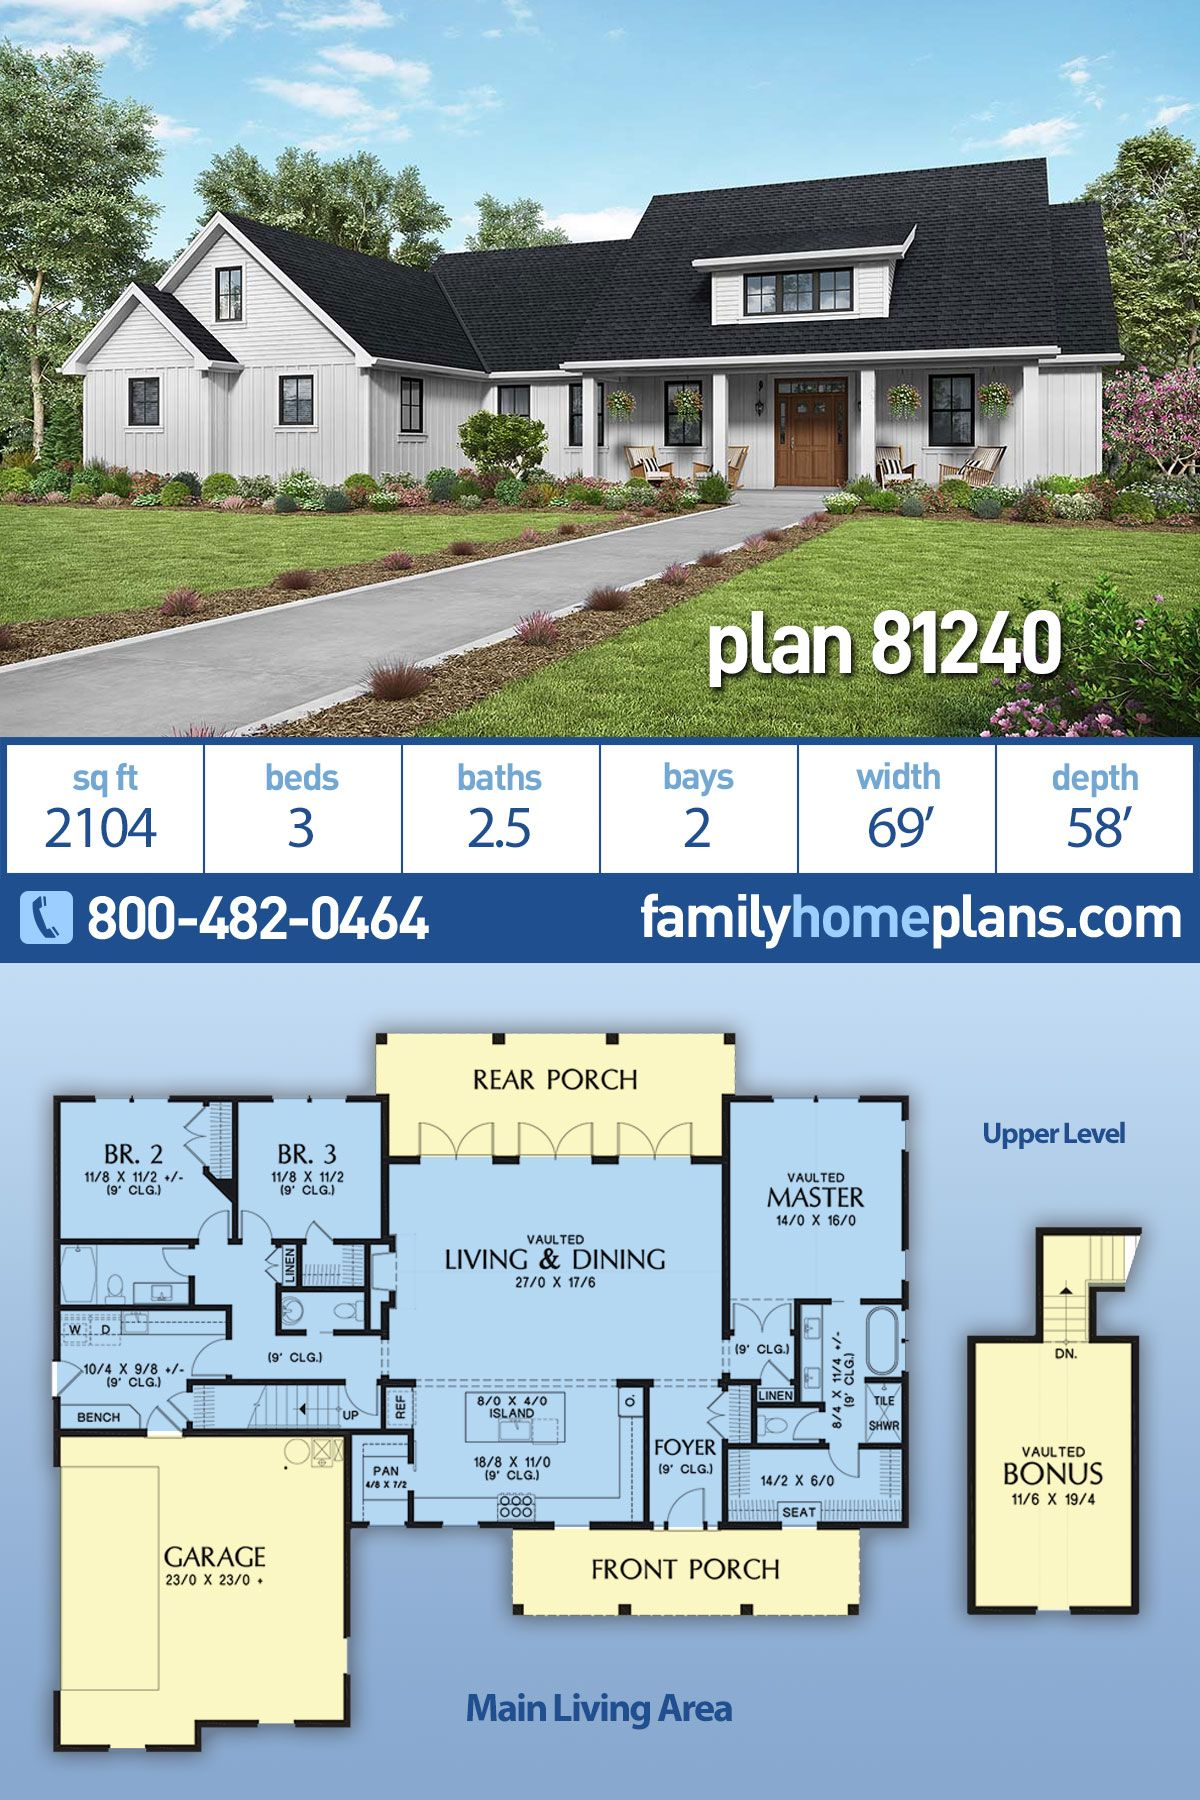 Photo of Modern Style House Plan 81240 with 3 Bed, 3 Bath, 2 Car Garage